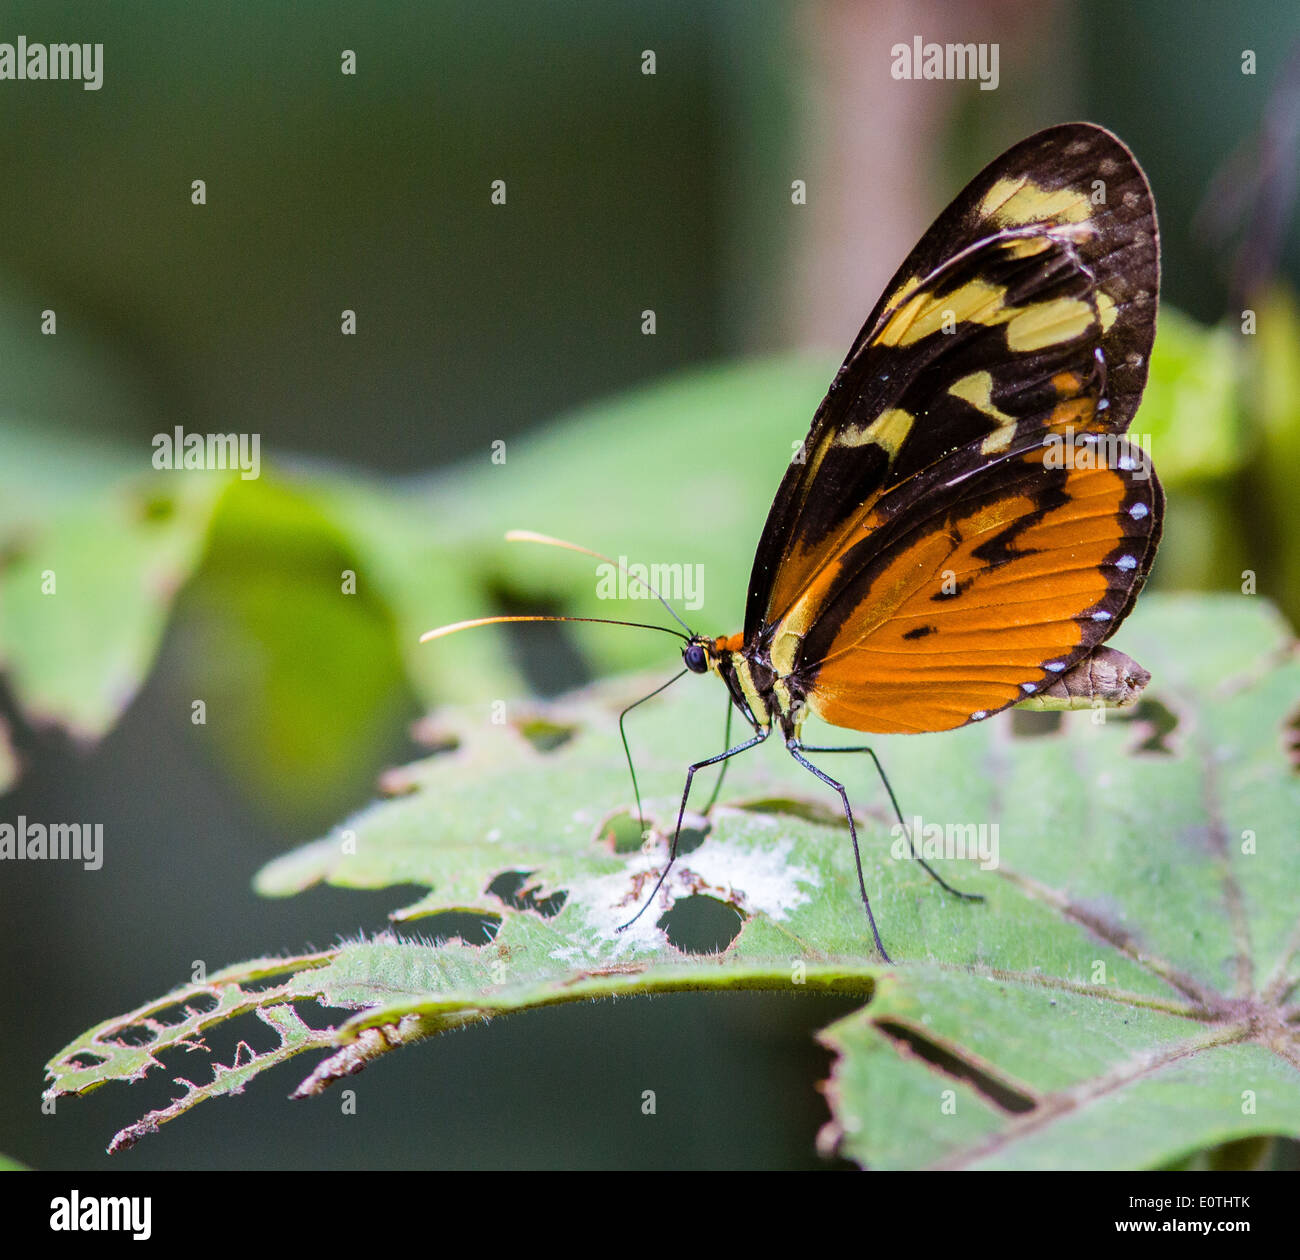 Tiger Longwing butterfly Heliconius cydno chioneus feeding from bird droppings on a leaf at Sarapiqui Costa Rica - Stock Image